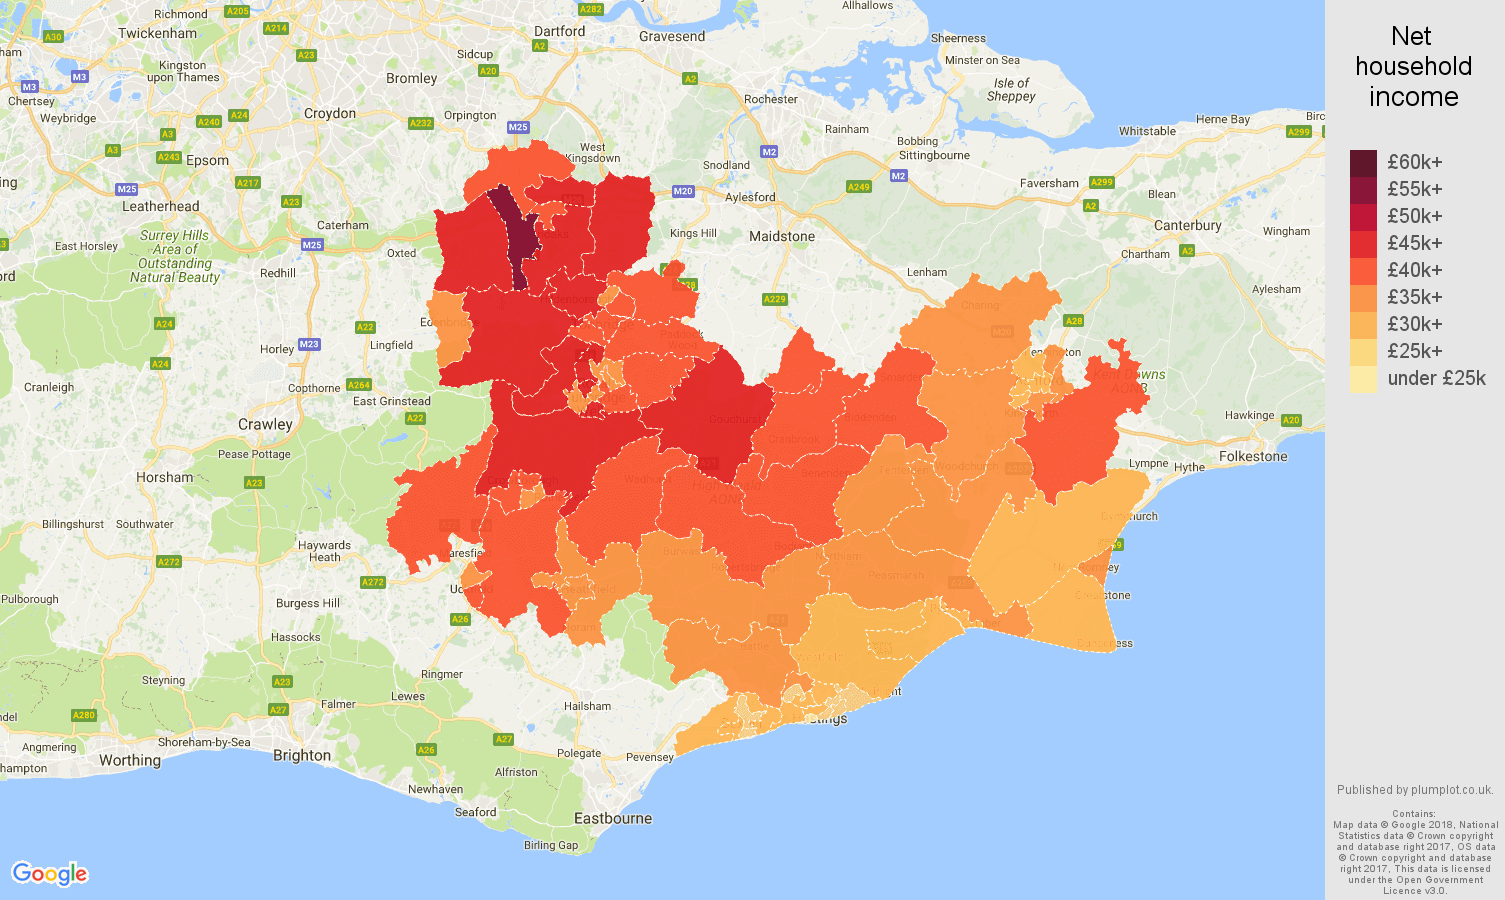 Tonbridge net household income map